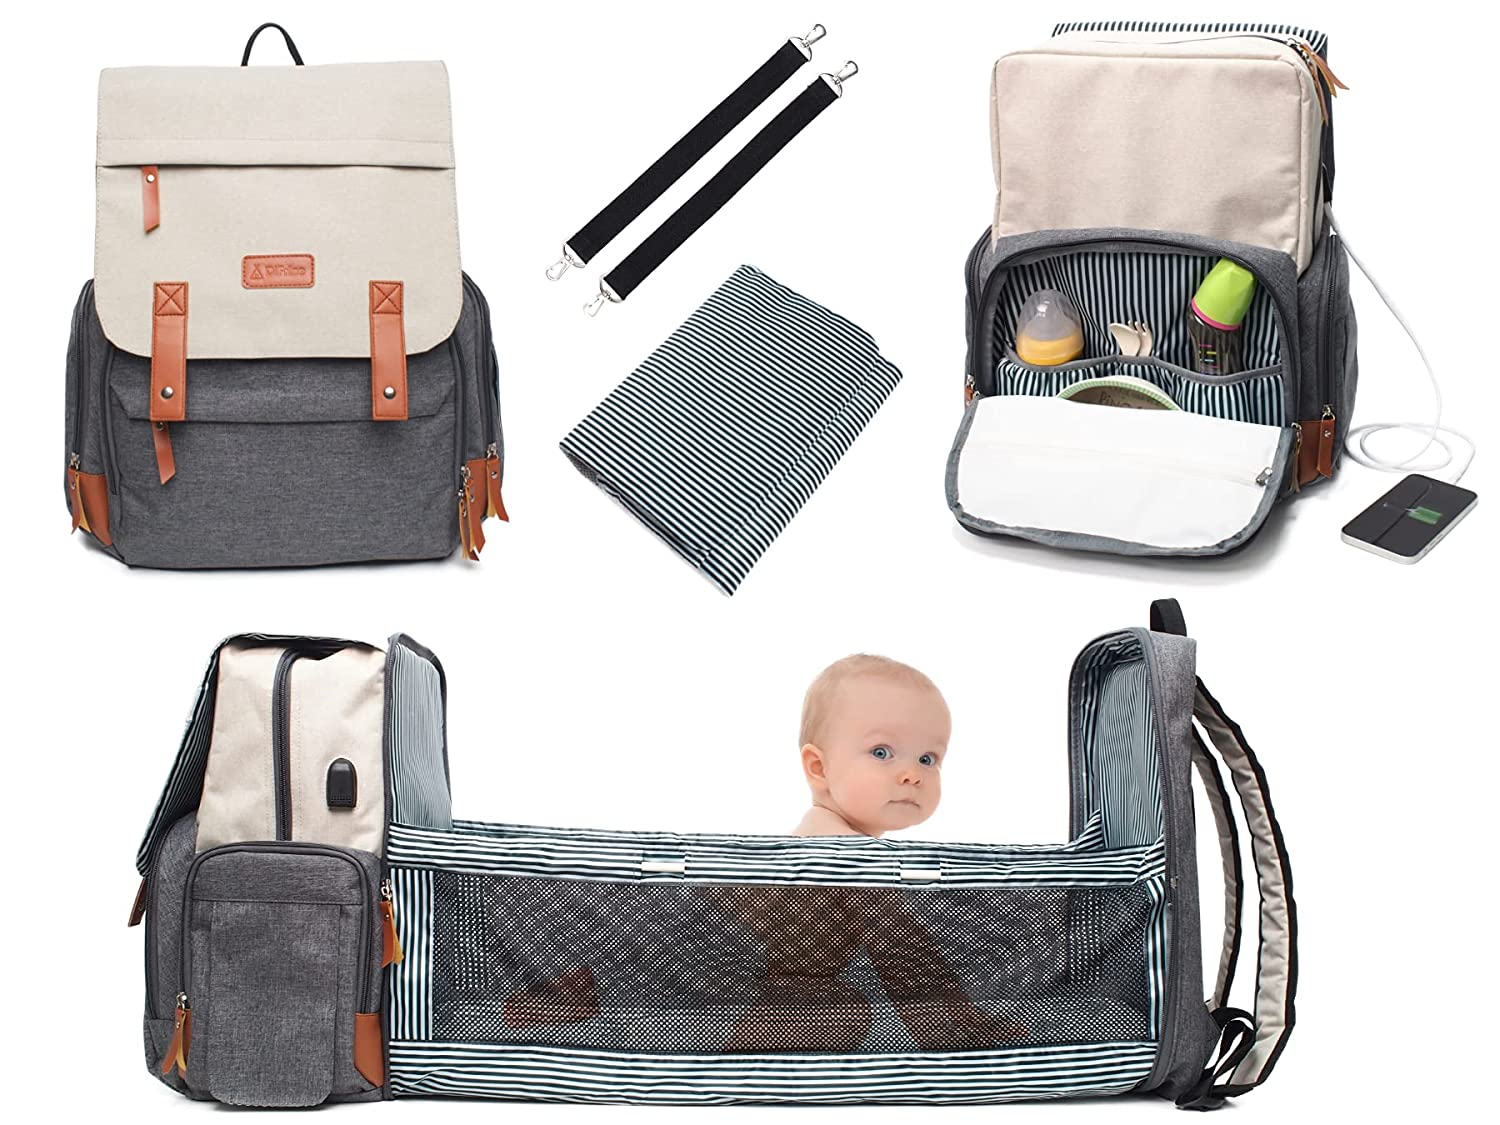 Diaper Bag Backpack with Changing Station, Large Baby Bag with Travel Bassinet, Insulated Space, USB Charging Port, Multiple Pockets, Stroller Straps, Stylish Neutral Newborn Essential, White